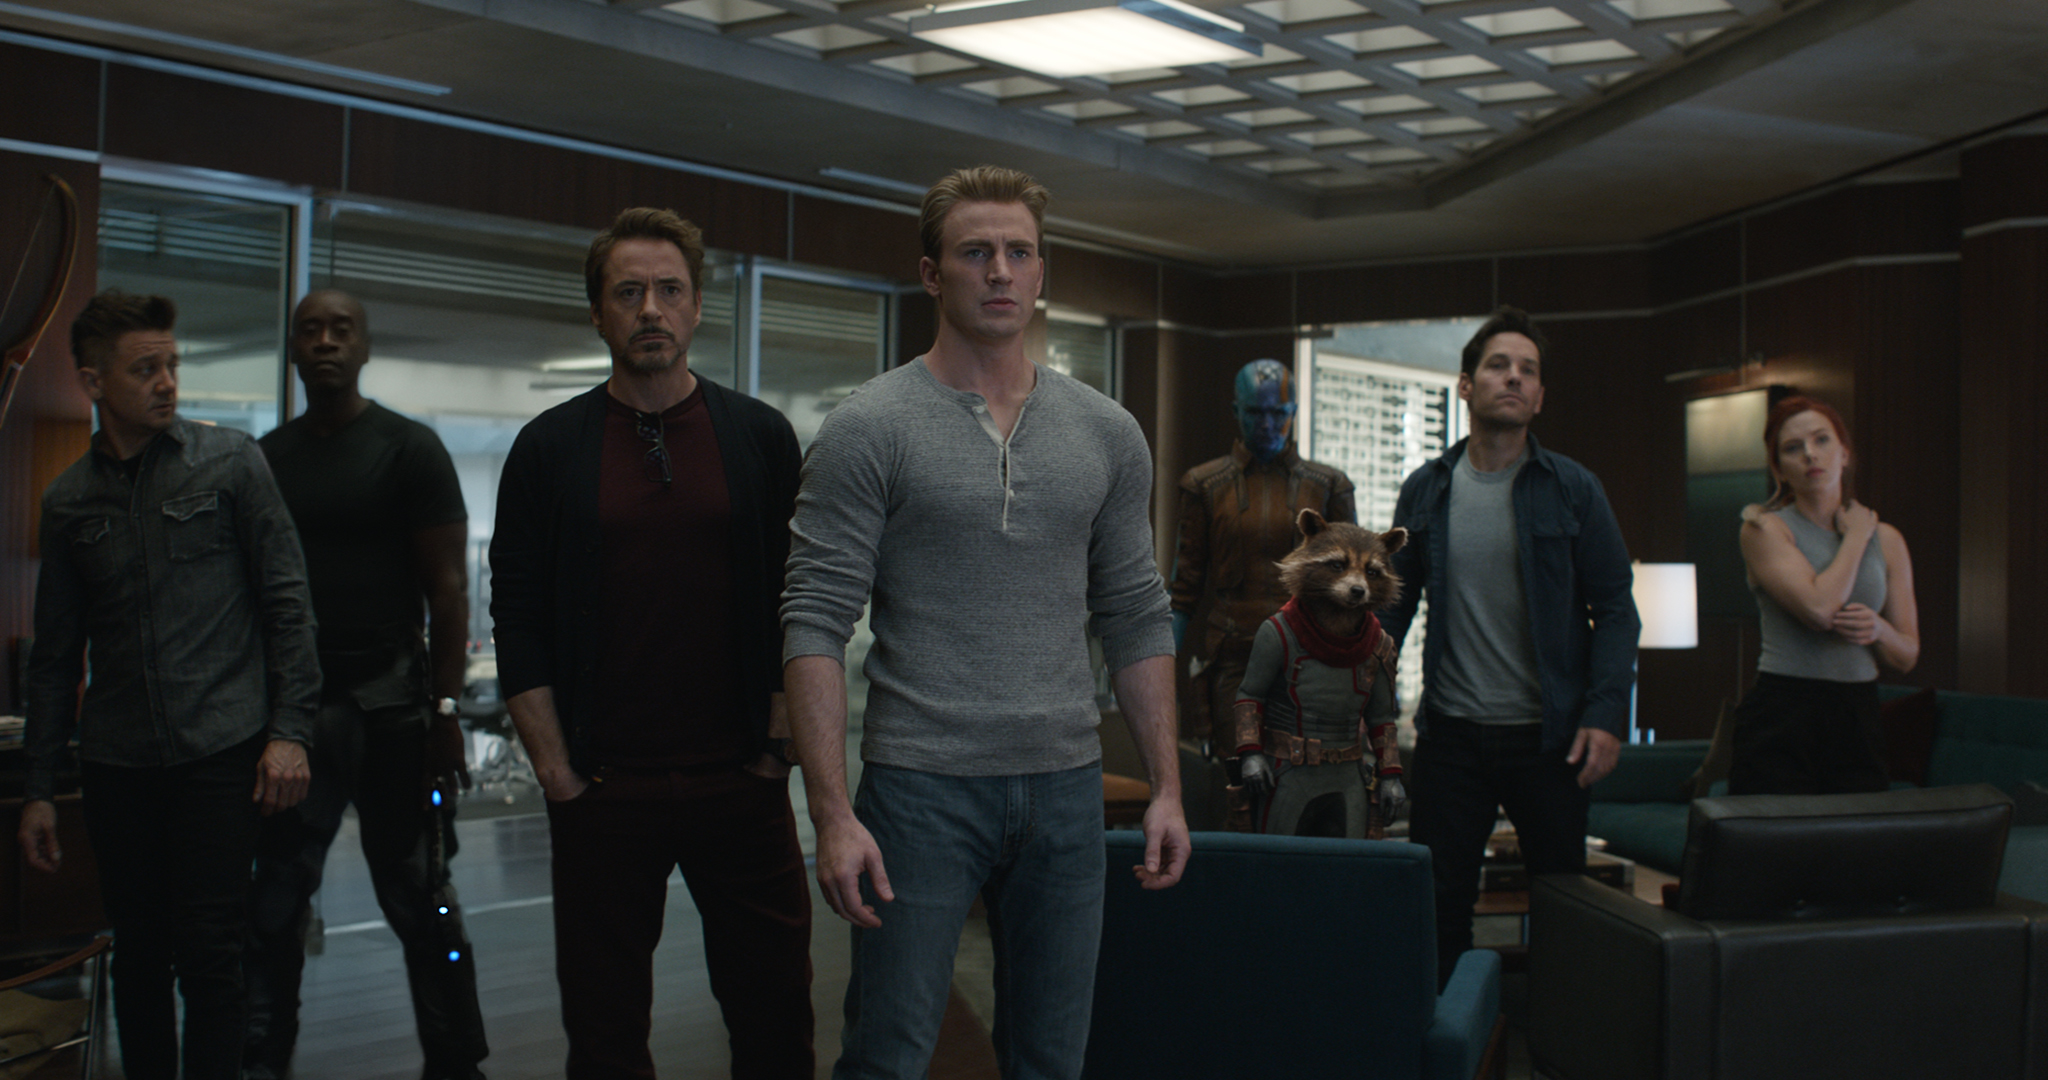 Avengers: Endgame post-credits scene (spoiler alert!): Is there one?